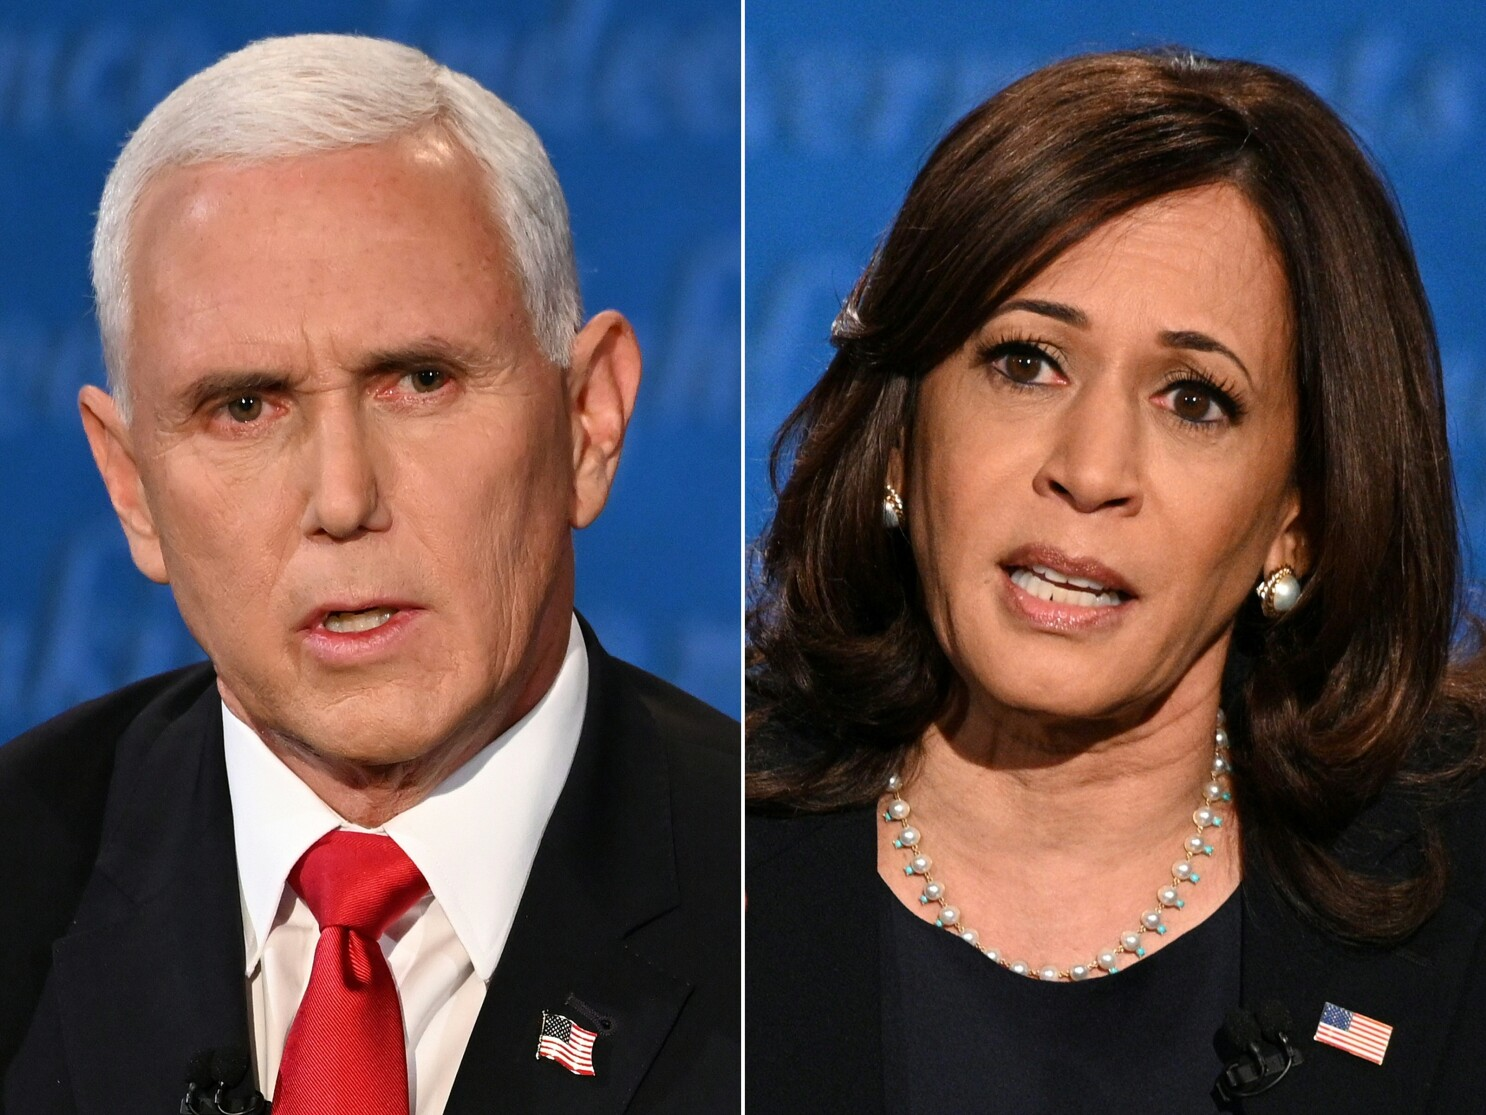 VP candidates Harris and Pence debate with friendlier fire - Los Angeles  Times